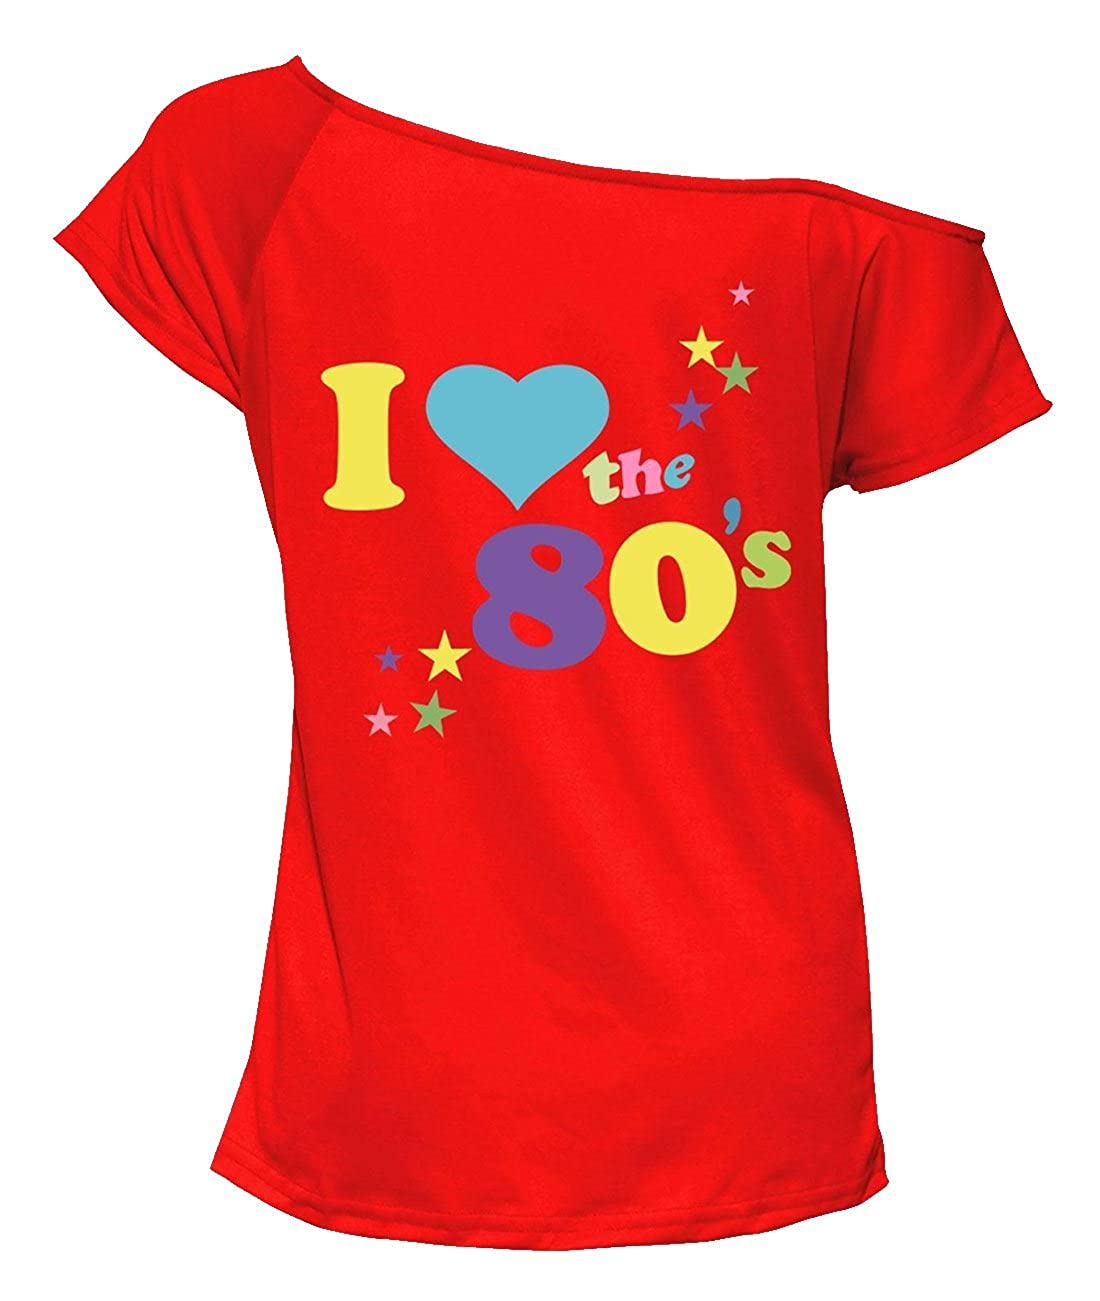 Rimi Hanger Ladies I Love The 80s Printed Party Wear T Shirt Top S/XXXL